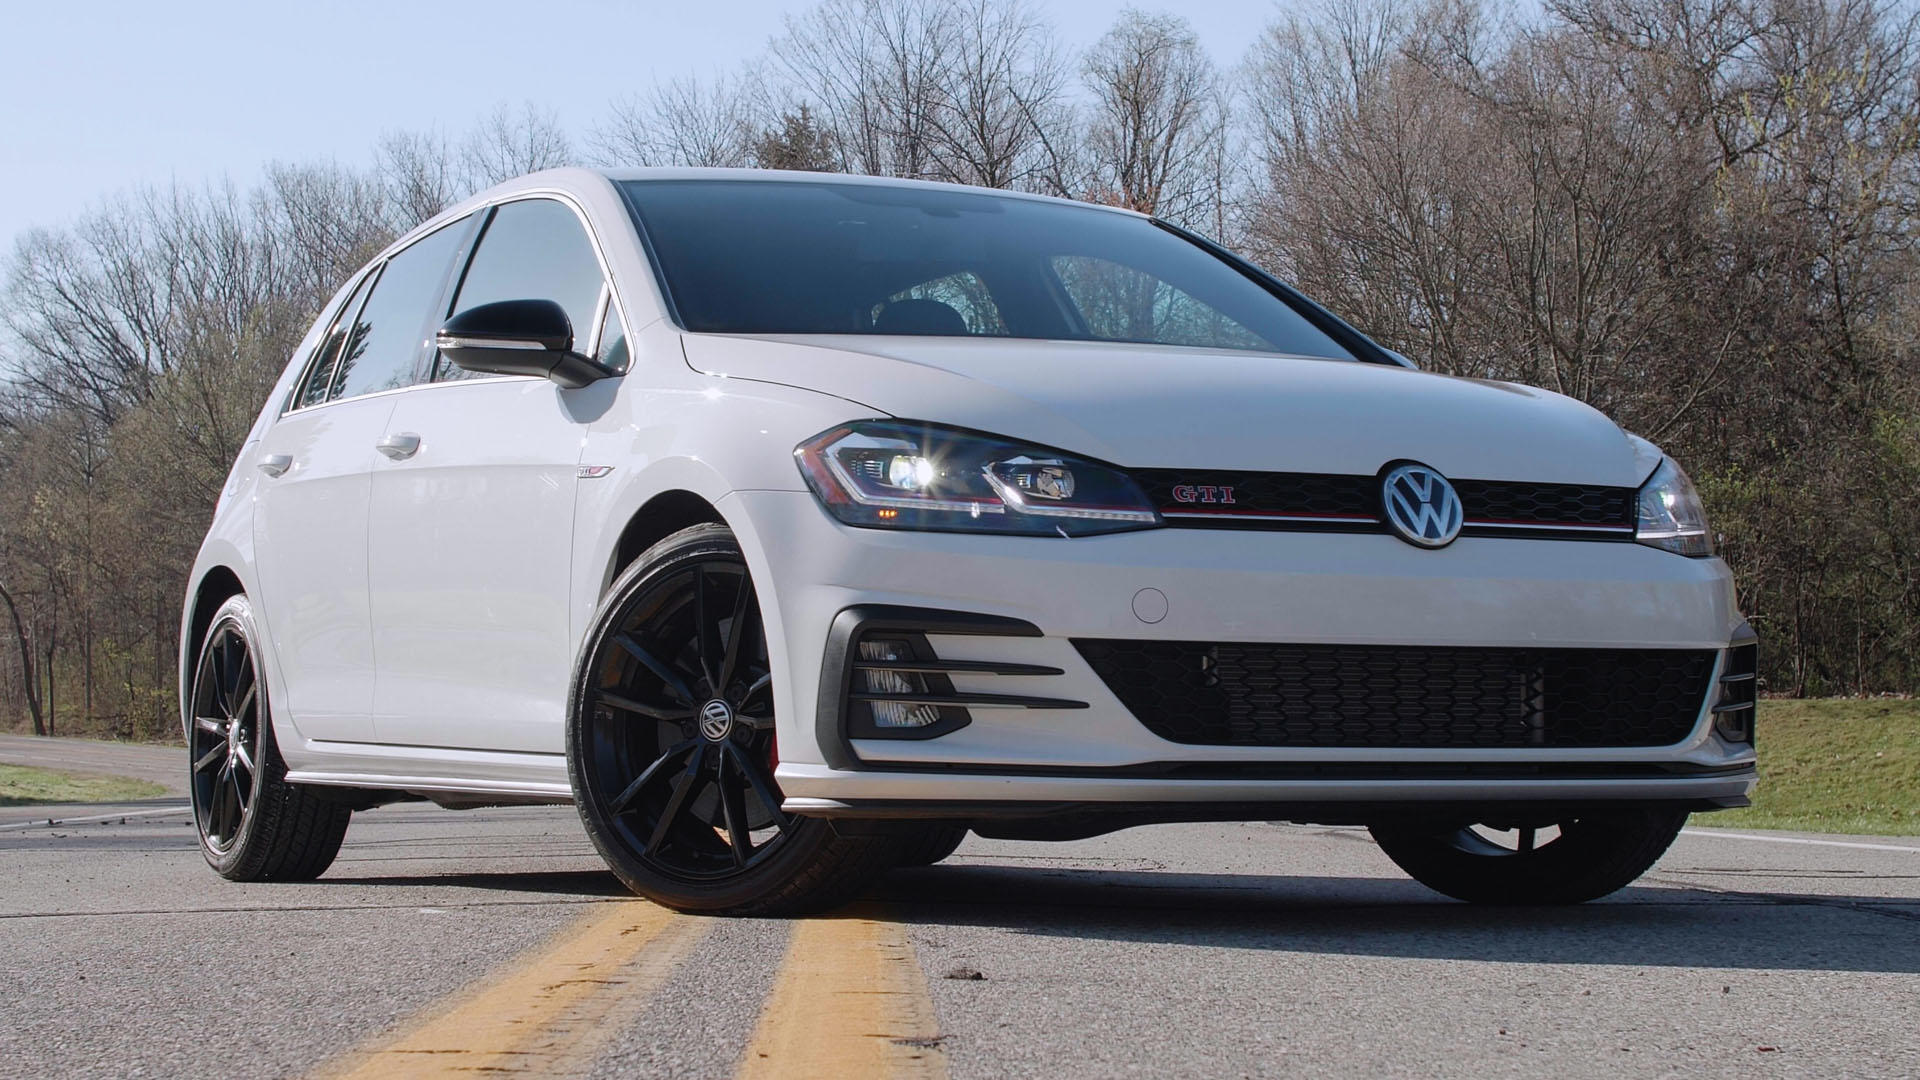 Video: 5 things you need to know about the 2019 VW Golf GTI